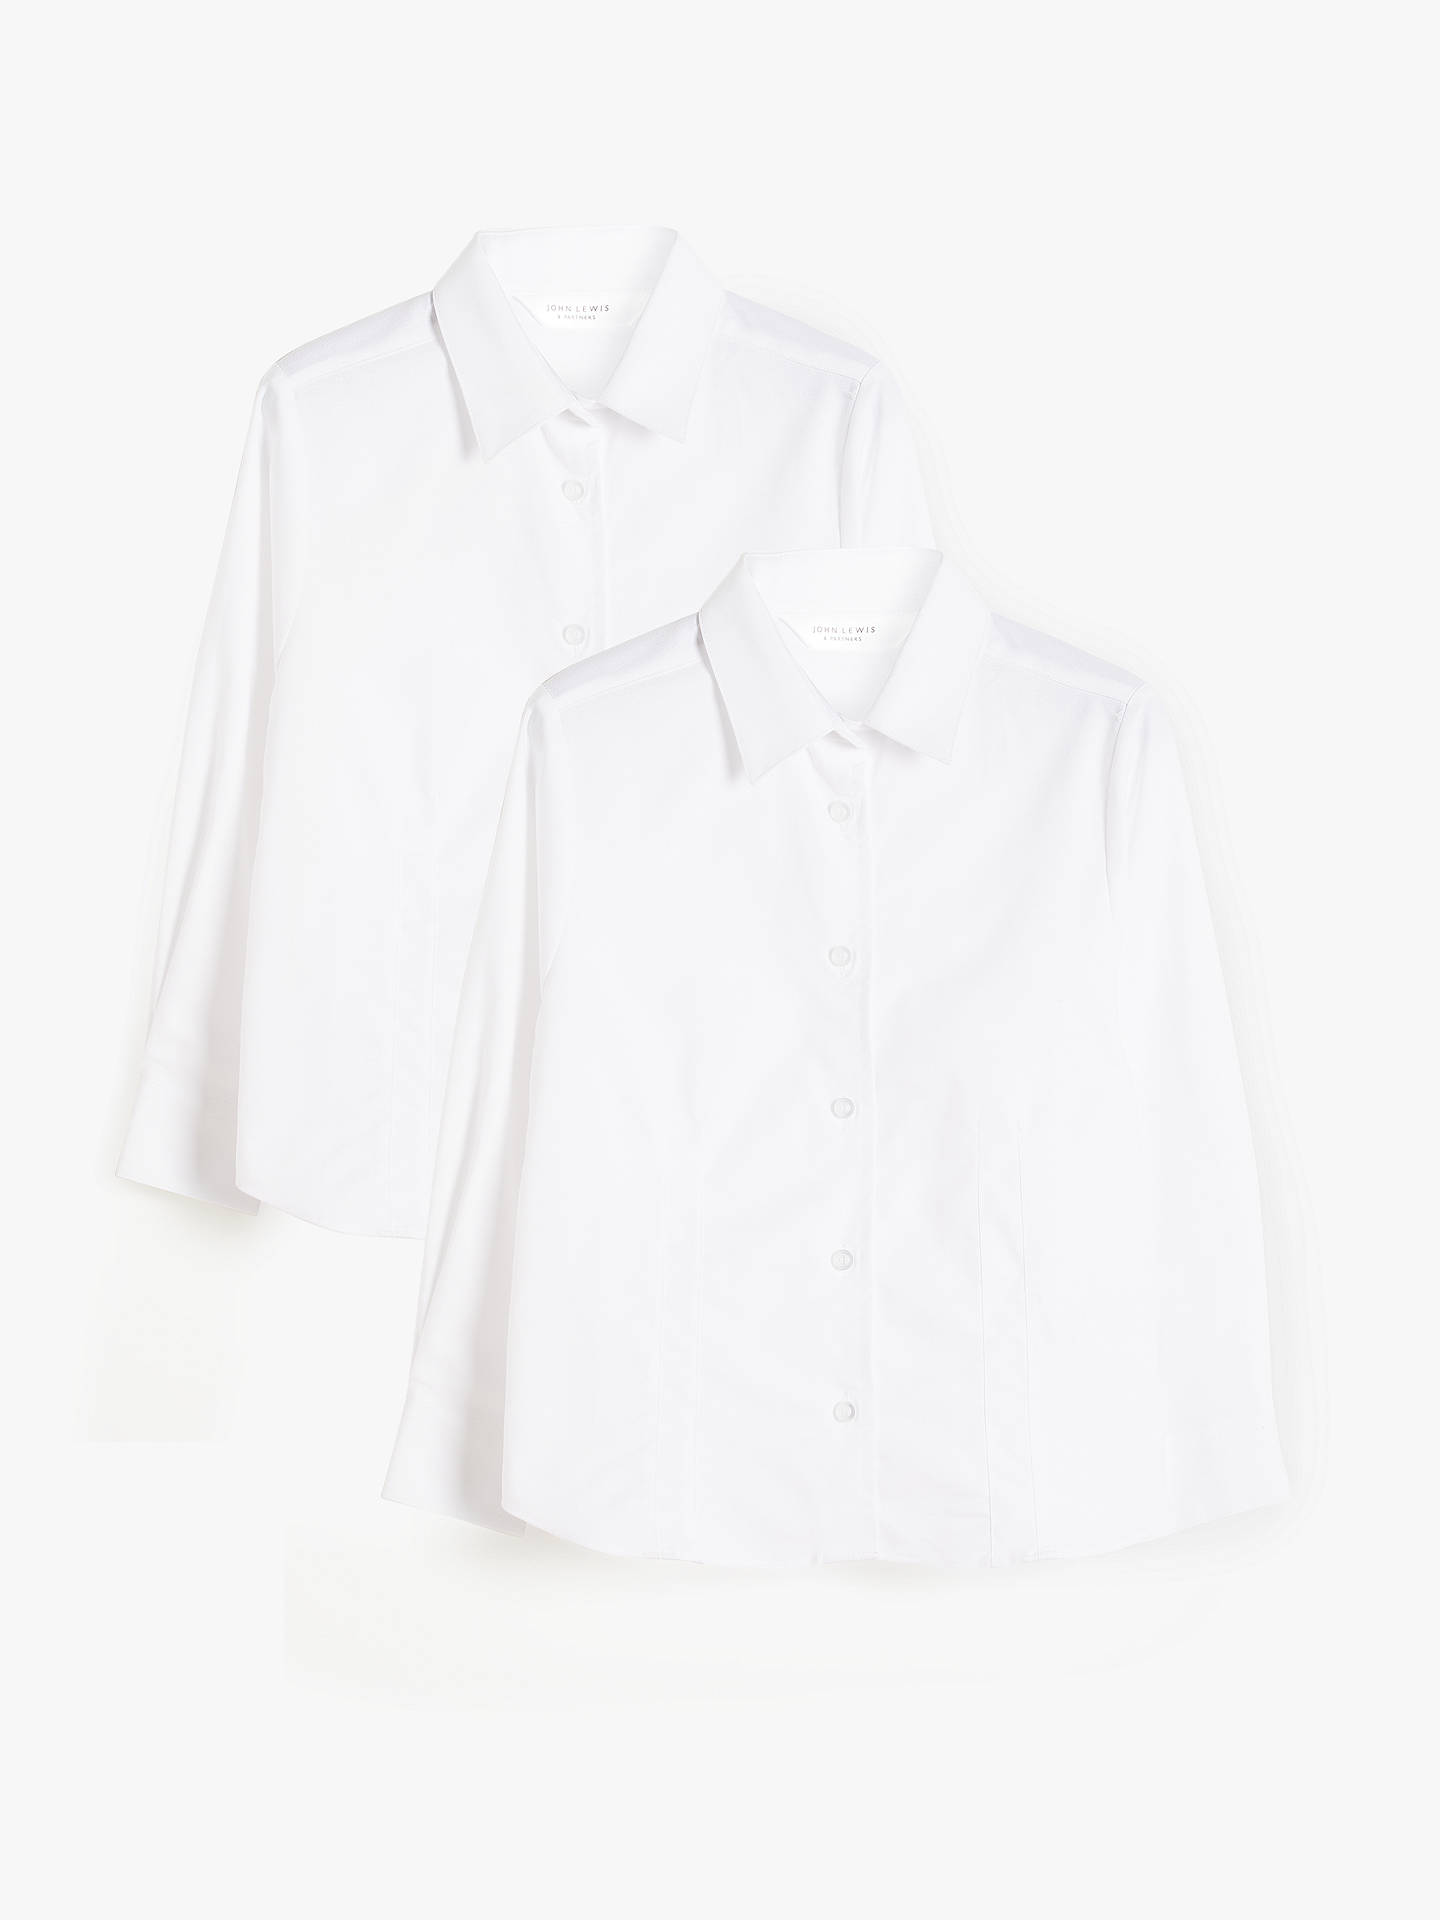 Buy John Lewis & Partners Girls' Organic Cotton Long Sleeve School Shirt, Pack of 2, White, 3 years Online at johnlewis.com